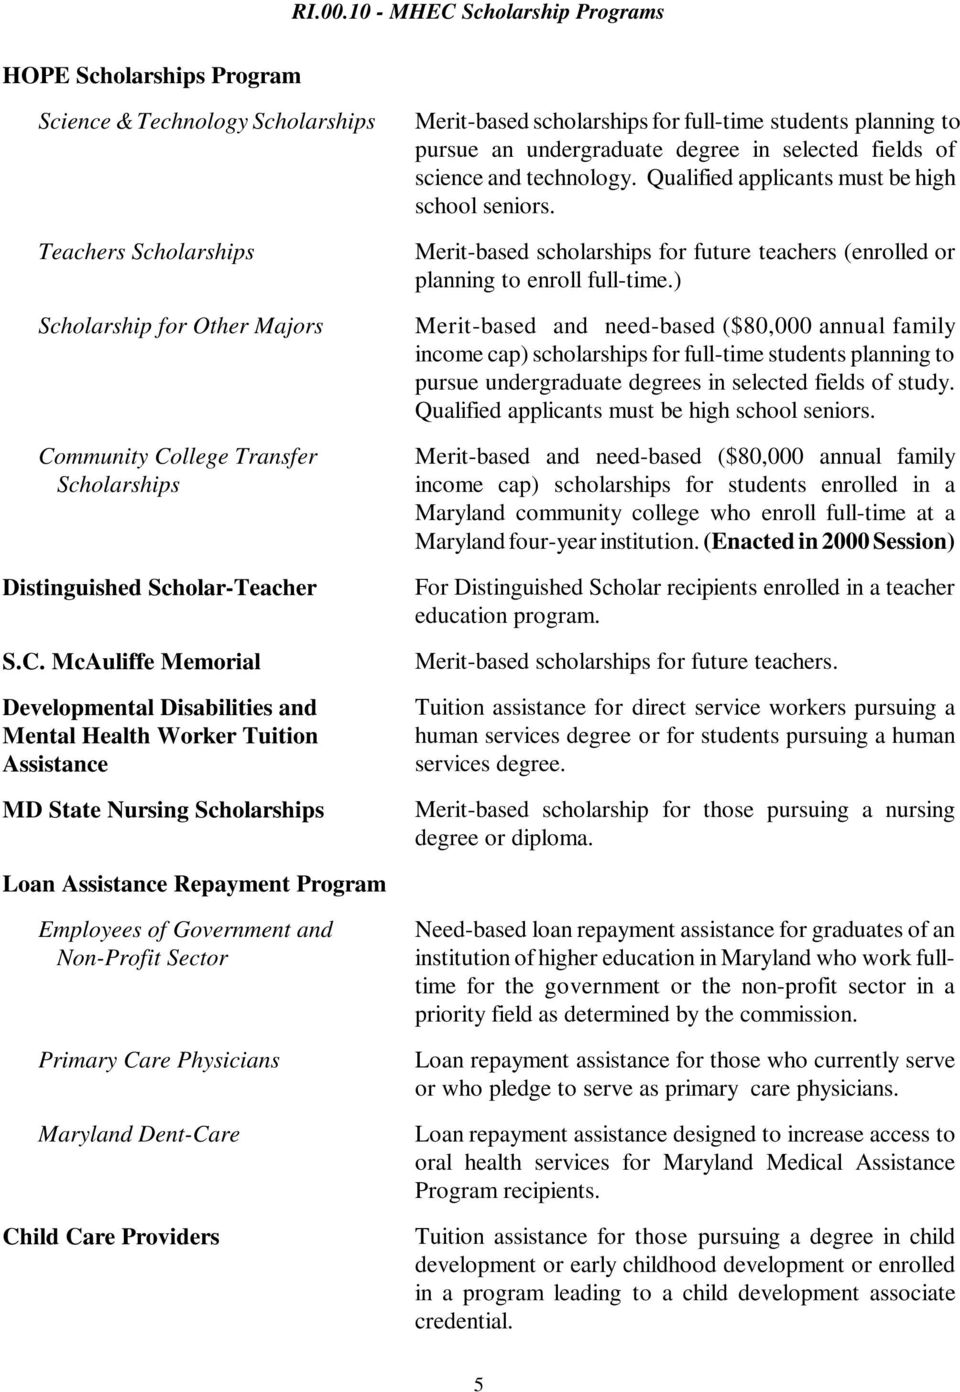 llege Transfer Scholarships Distinguished Scholar-Teacher S.C.